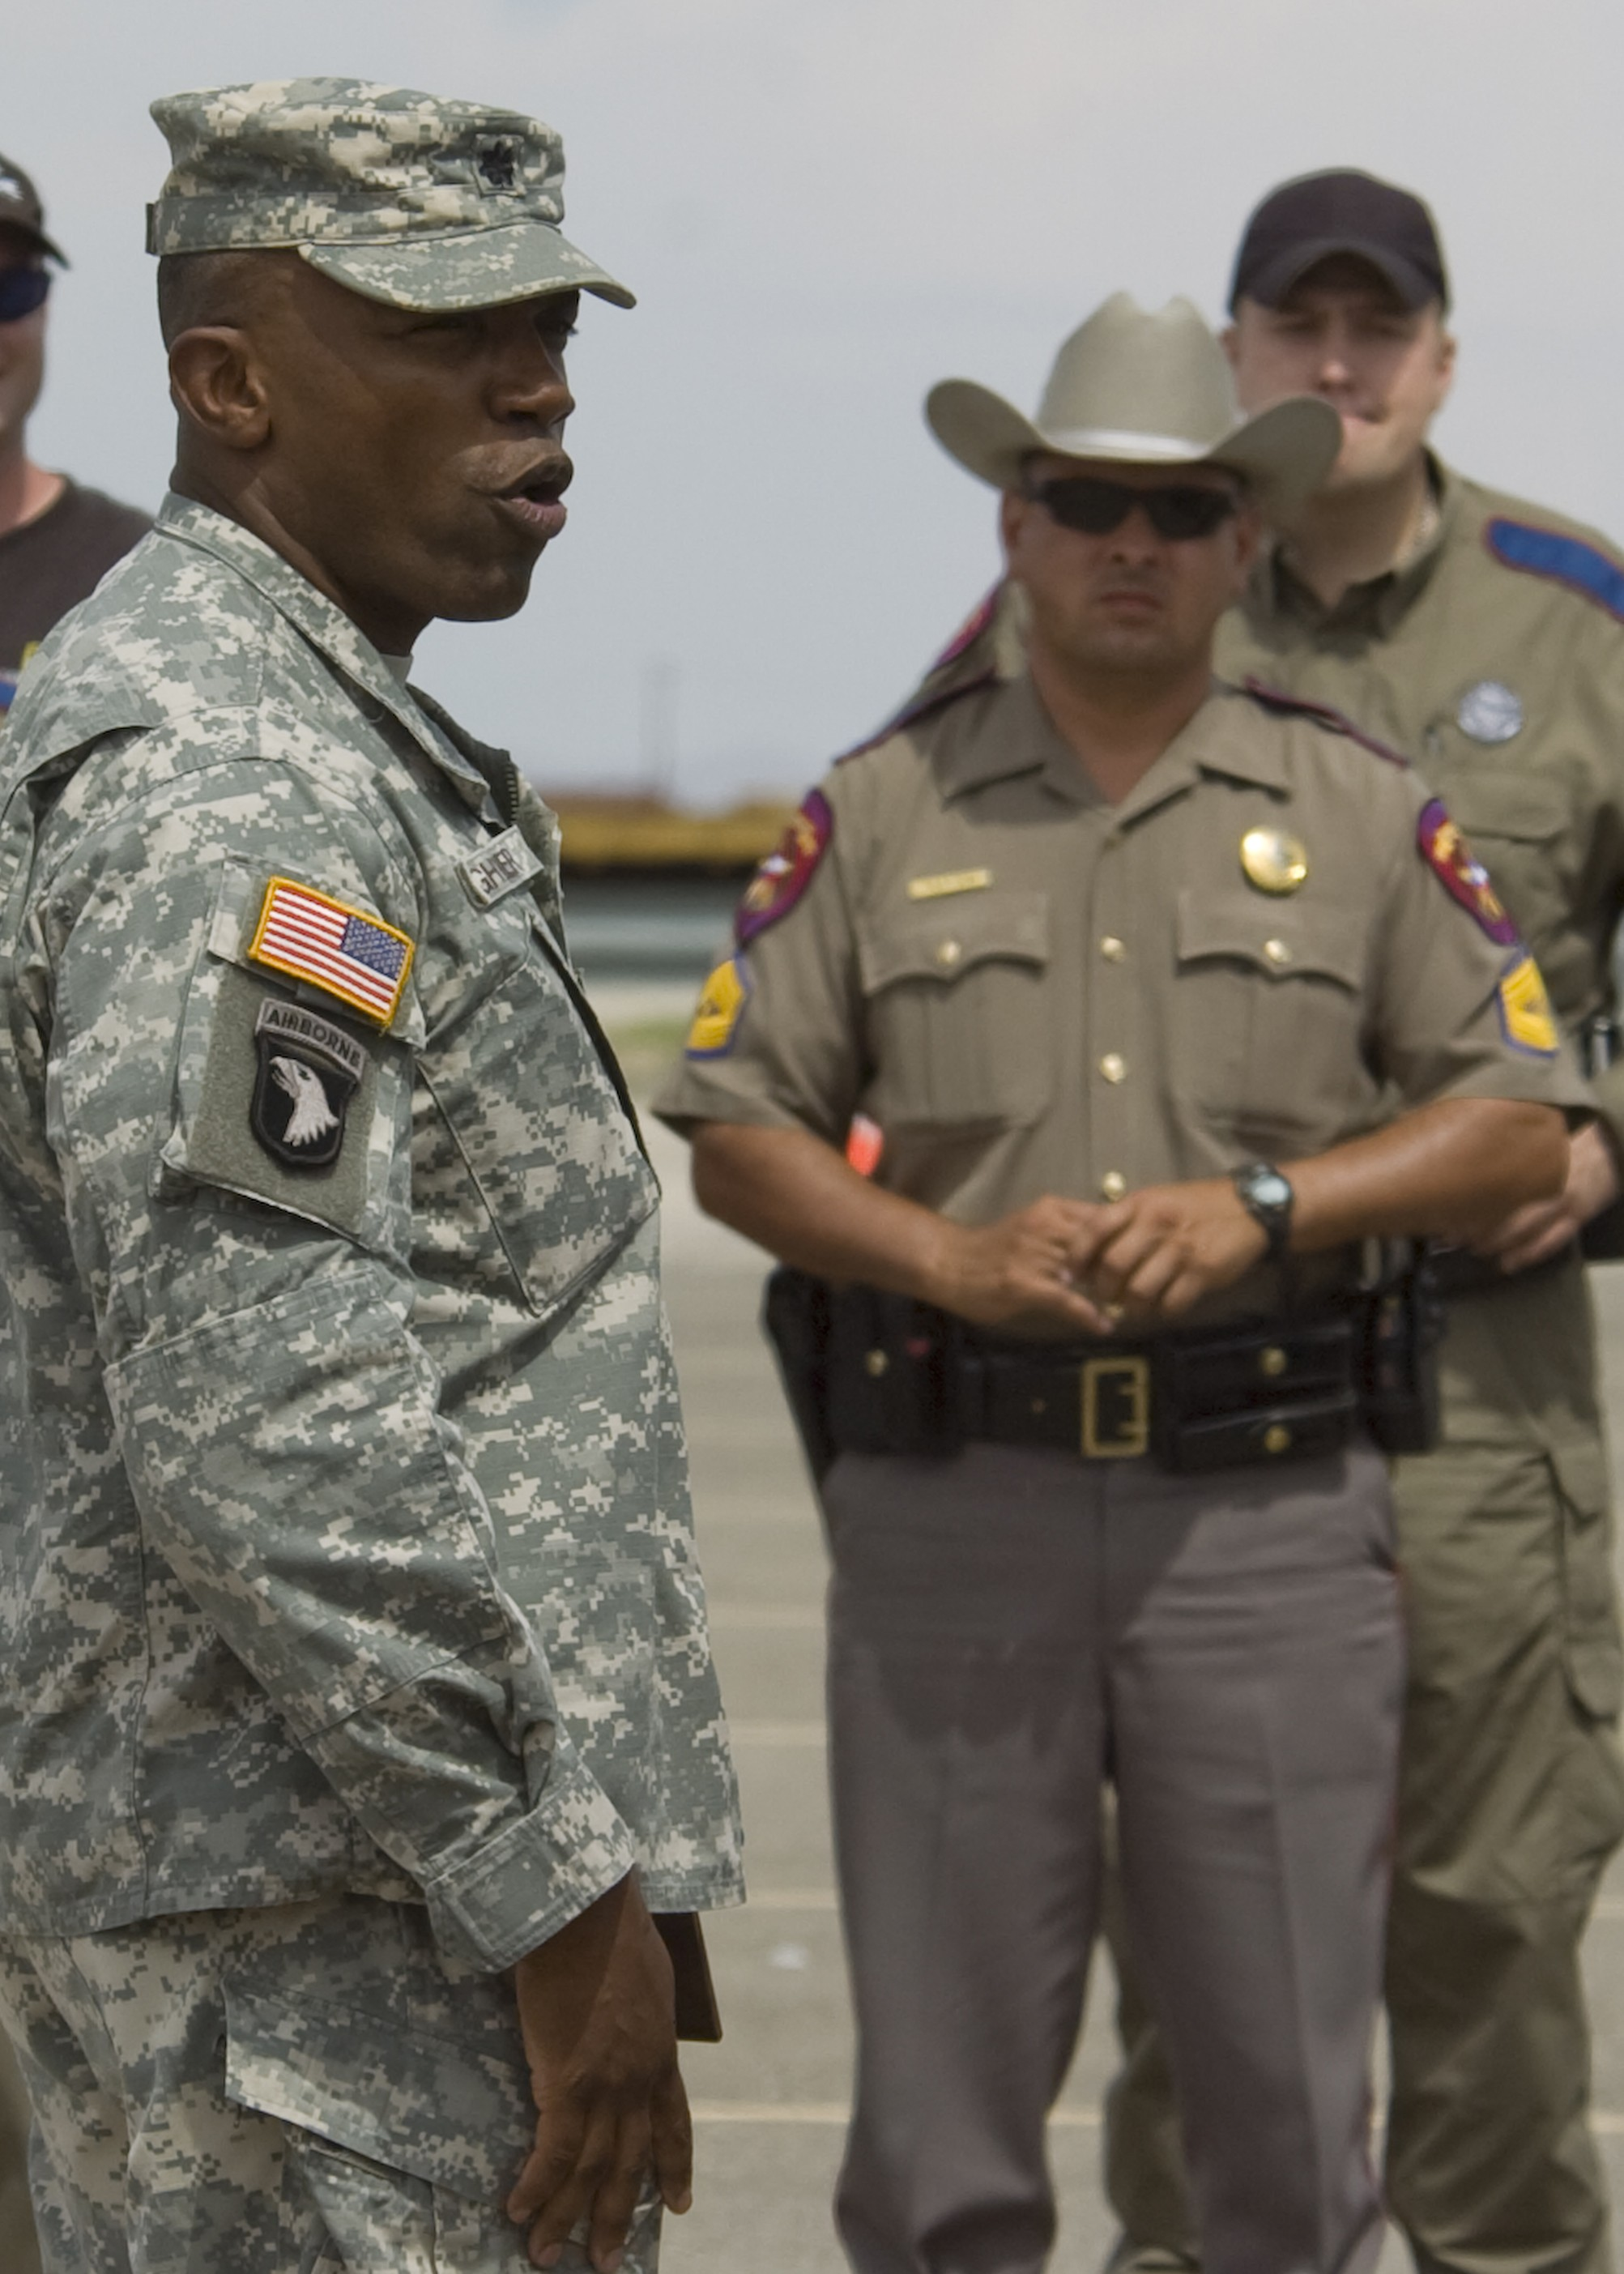 591st MP Co., Texas Highway Patrol Join Forces For